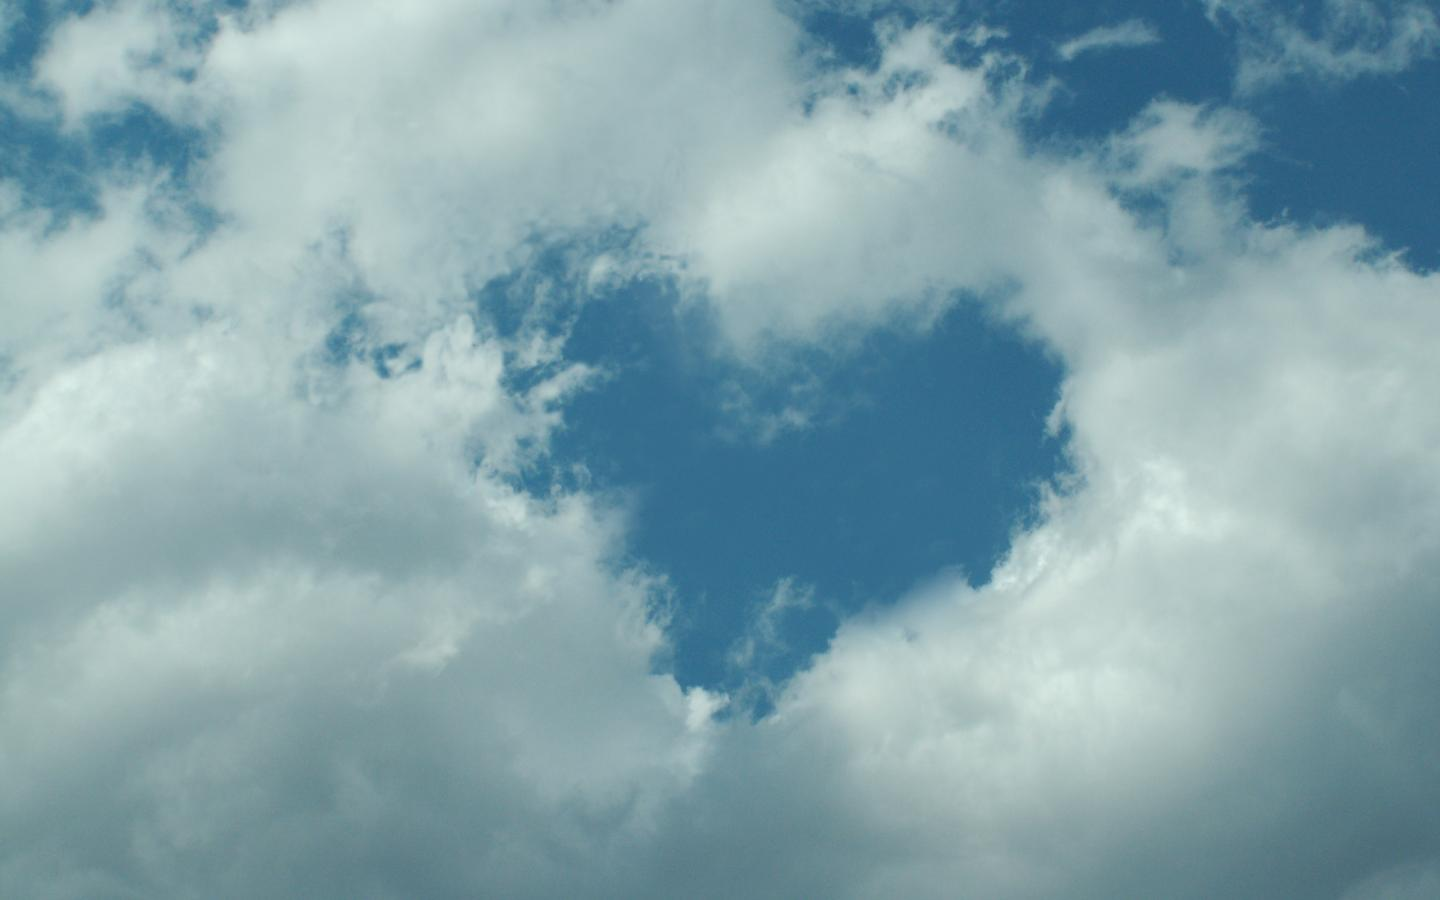 Animated Cute Girl Wallpaper Hd Heart Shaped Cloud 12 Of 57 With Heart Shape Hole In Sky